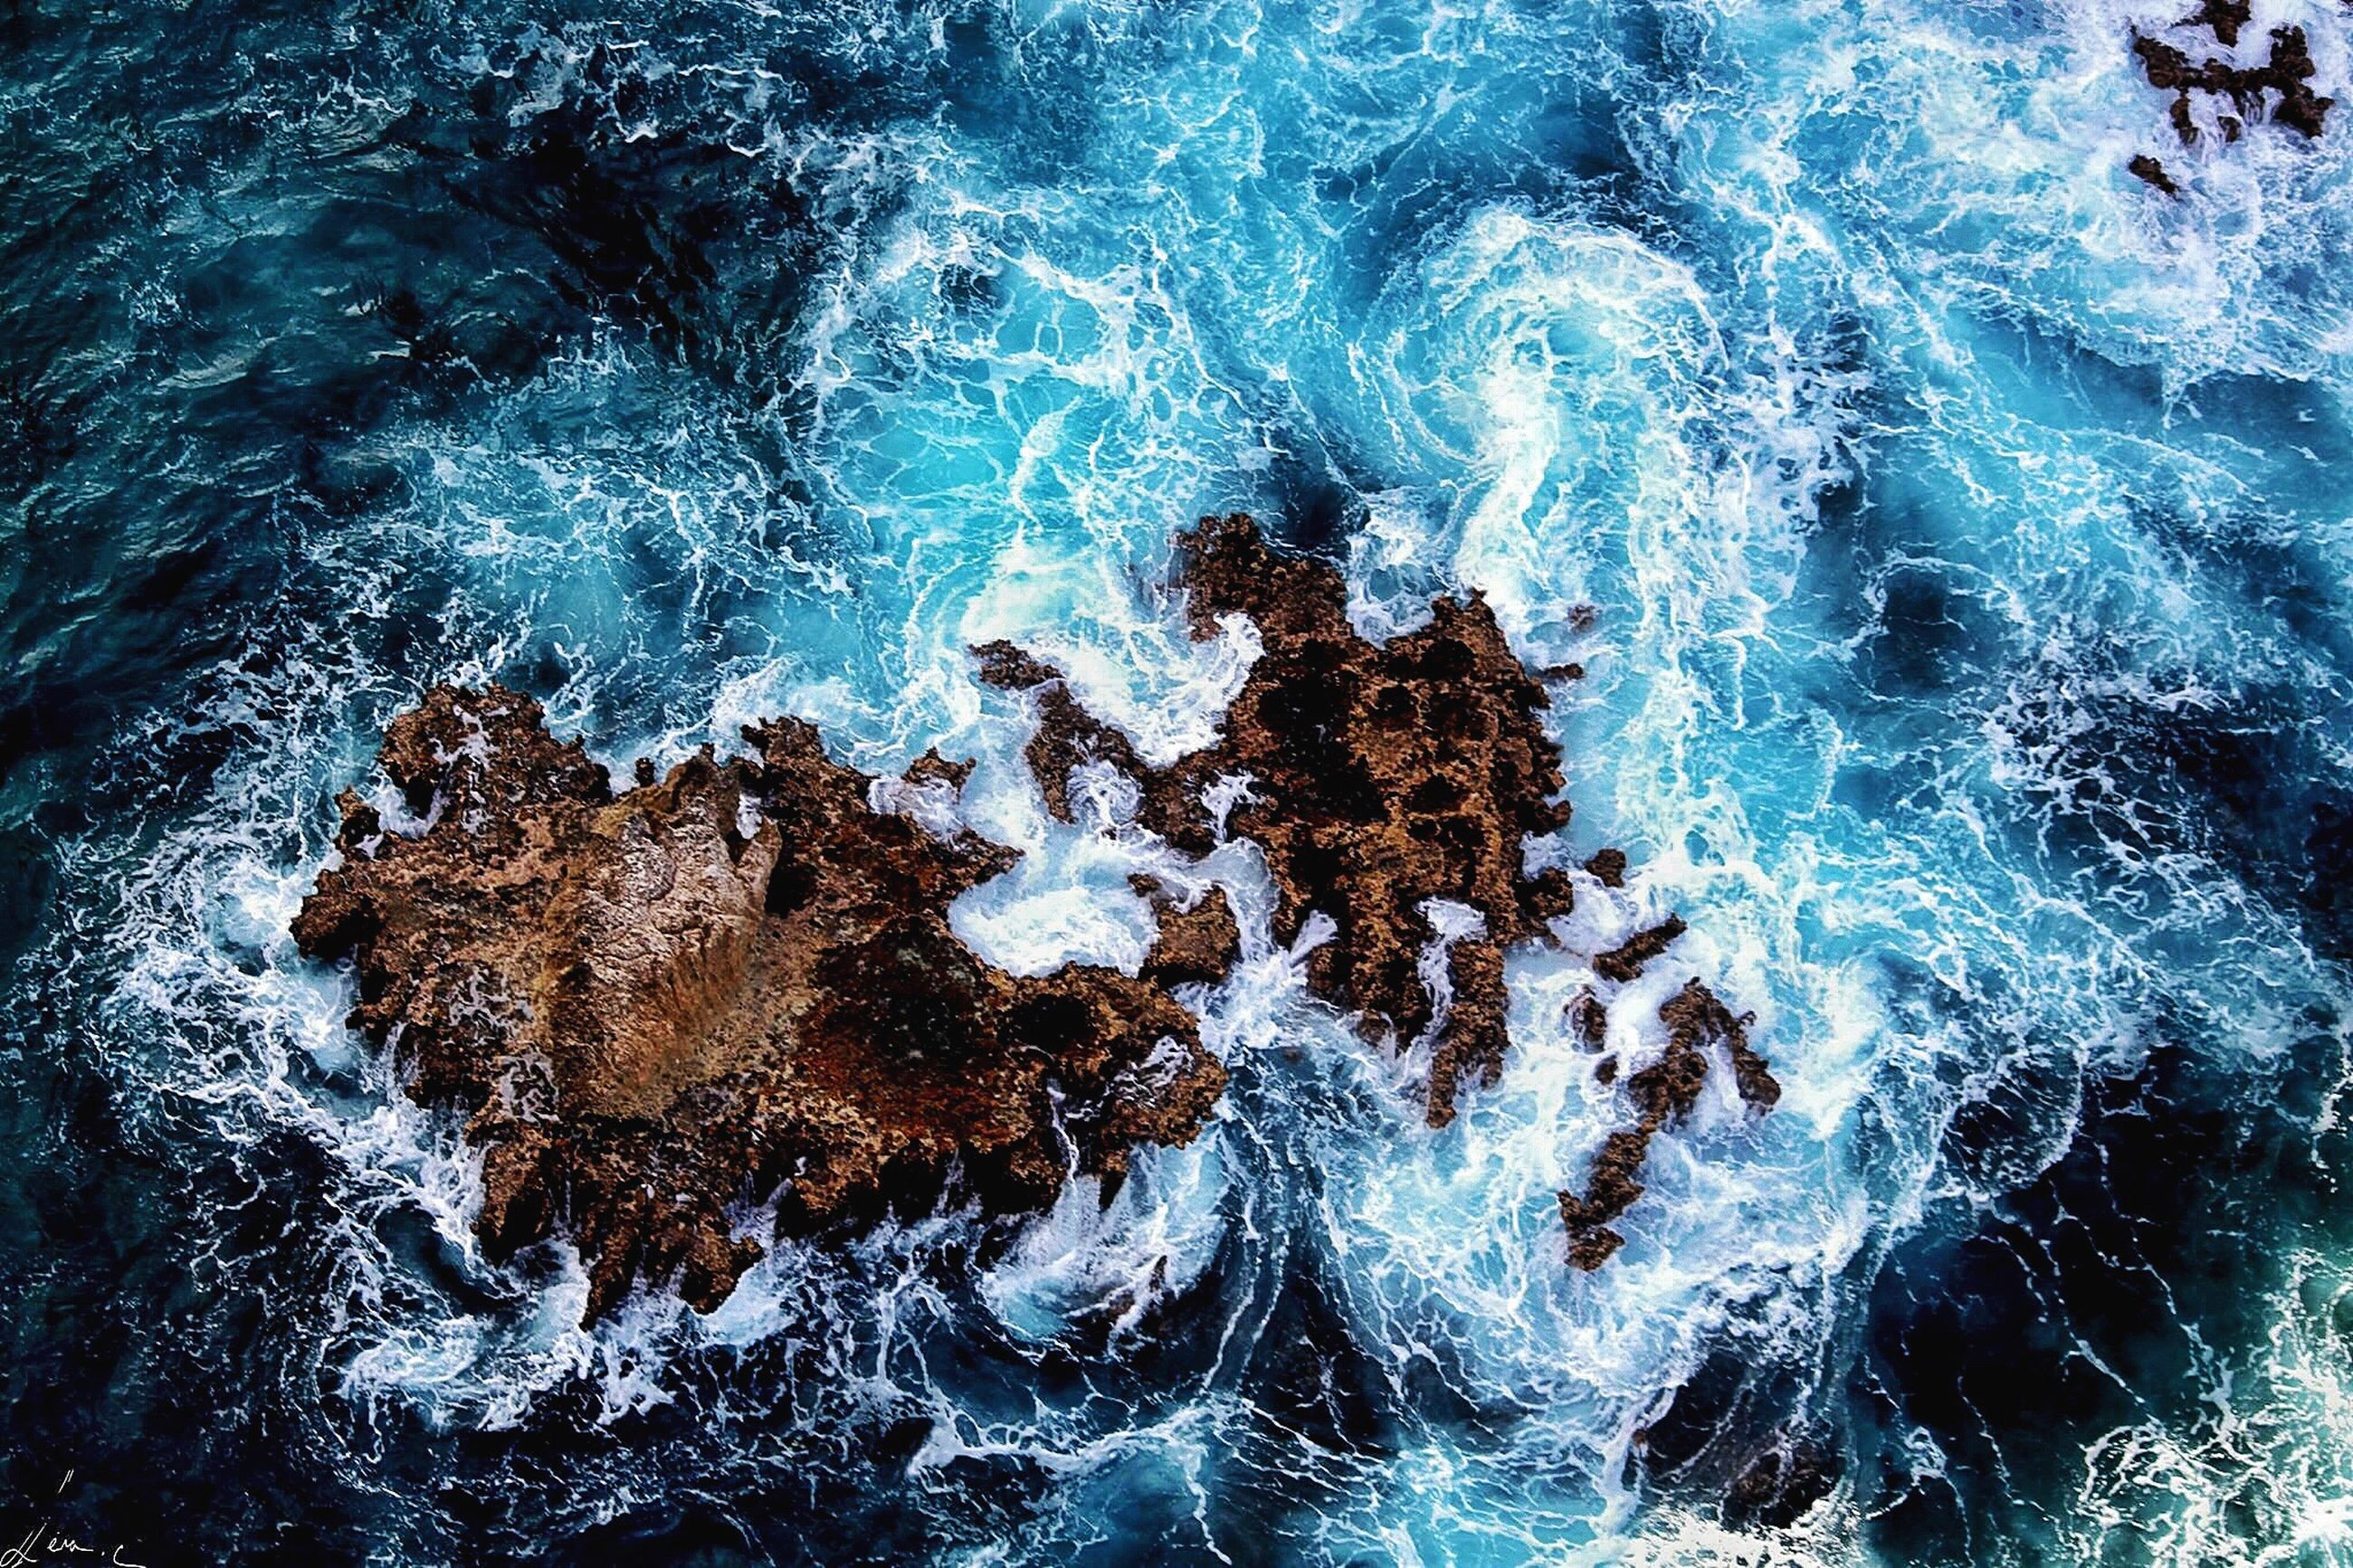 water, waterfront, motion, high angle view, sea, nature, full frame, splashing, rock - object, backgrounds, rippled, surf, beauty in nature, outdoors, day, wave, close-up, no people, power in nature, textured